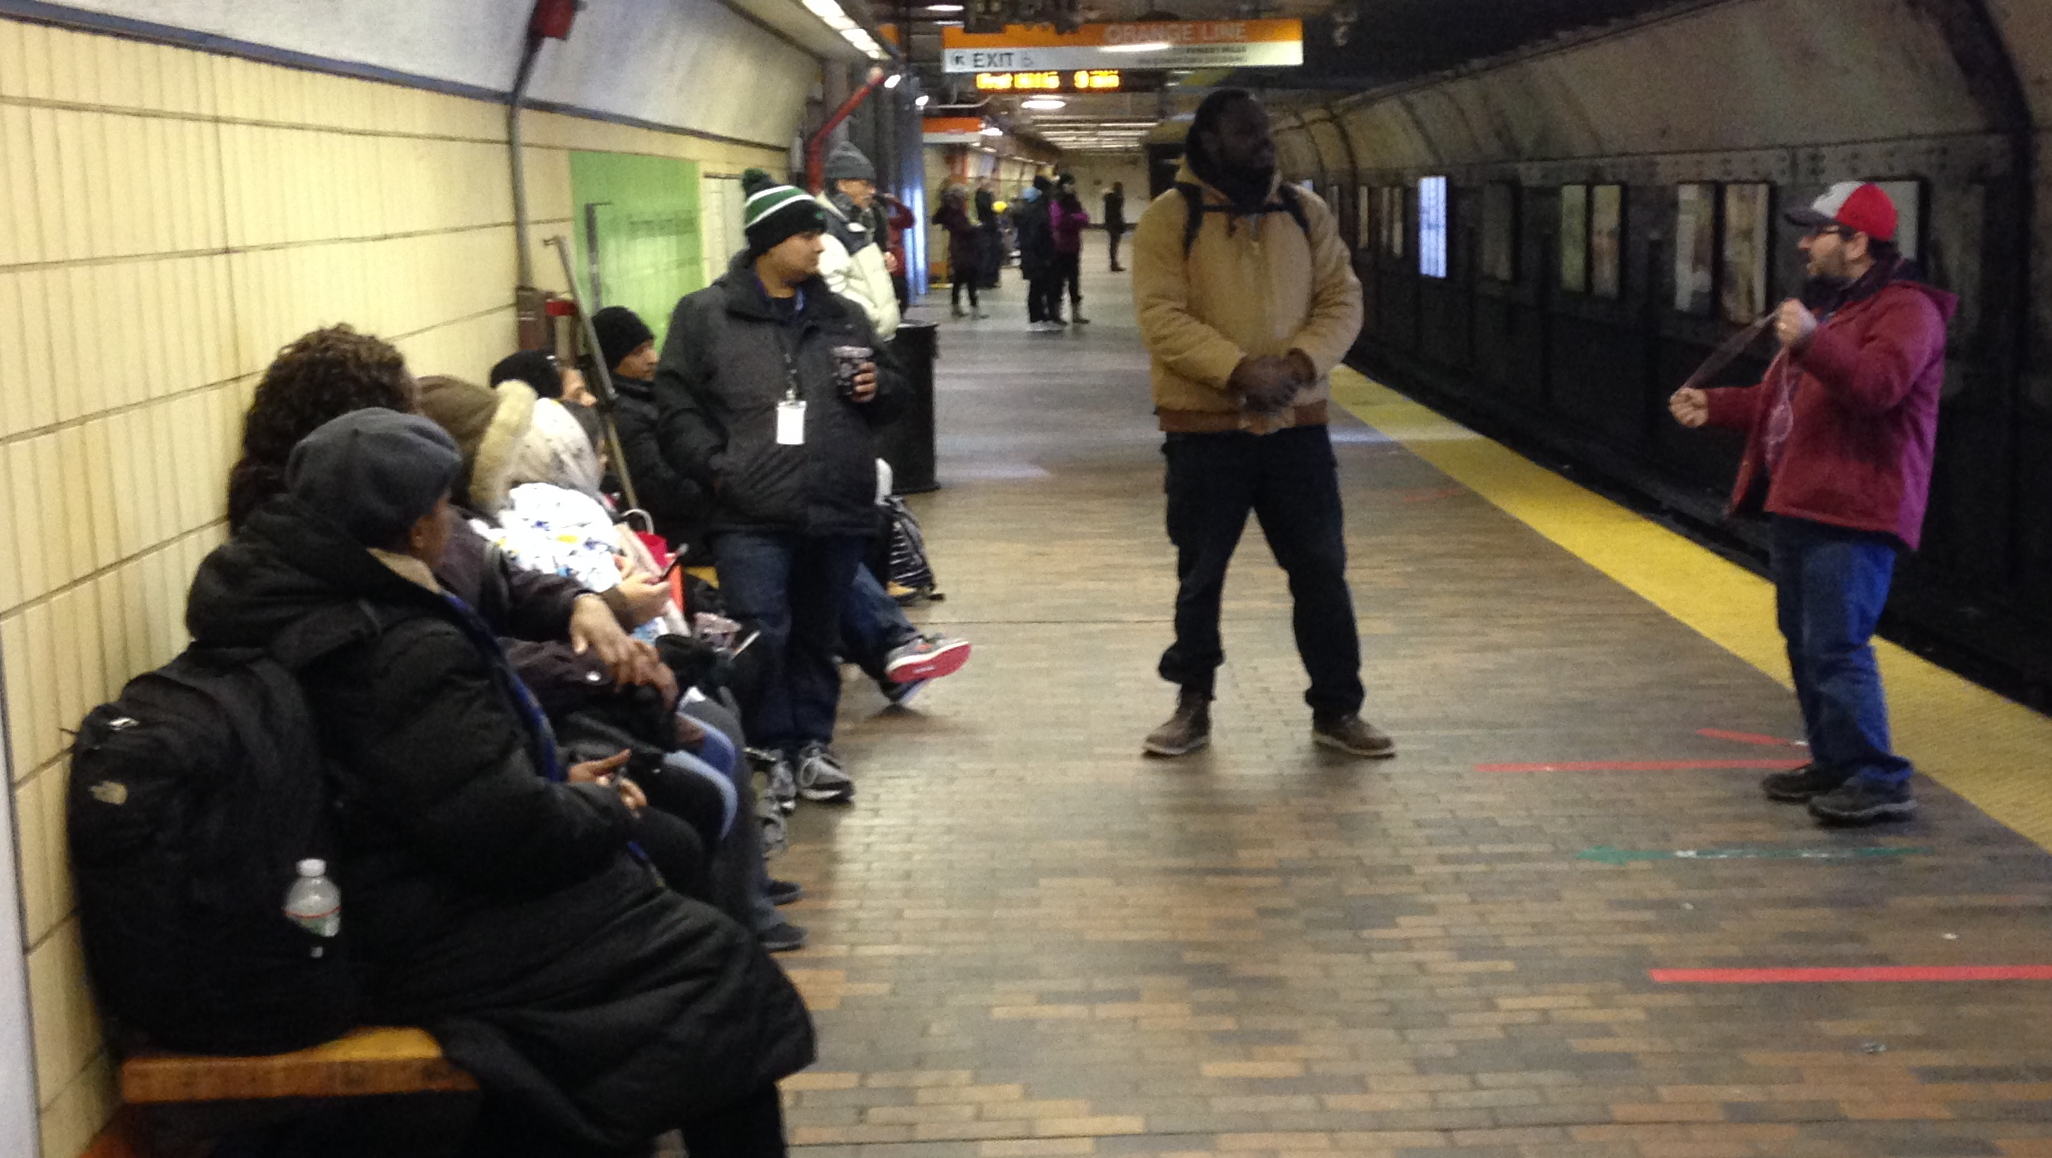 You never know what's gonna happen in the subway. I had just begun an open air message when the gentleman in the beige coat stood in between me and the people and started SHOUTING! His name is Dowuda and he is a member of a dangerous cult called 'Black Israelites.' He wouldn't let me get a word in by his constant yelling at the people. Yelling that I'm 'of the devil' because I'm white. I did manage to tell him that I'm Jewish, but he told me I'm a fake Jew. All Jews are fake Jews, he said. He yelled to the crowd that only Black people are true Jews. Jesus, Moses, Abraham, were all Black.  (More details below...)